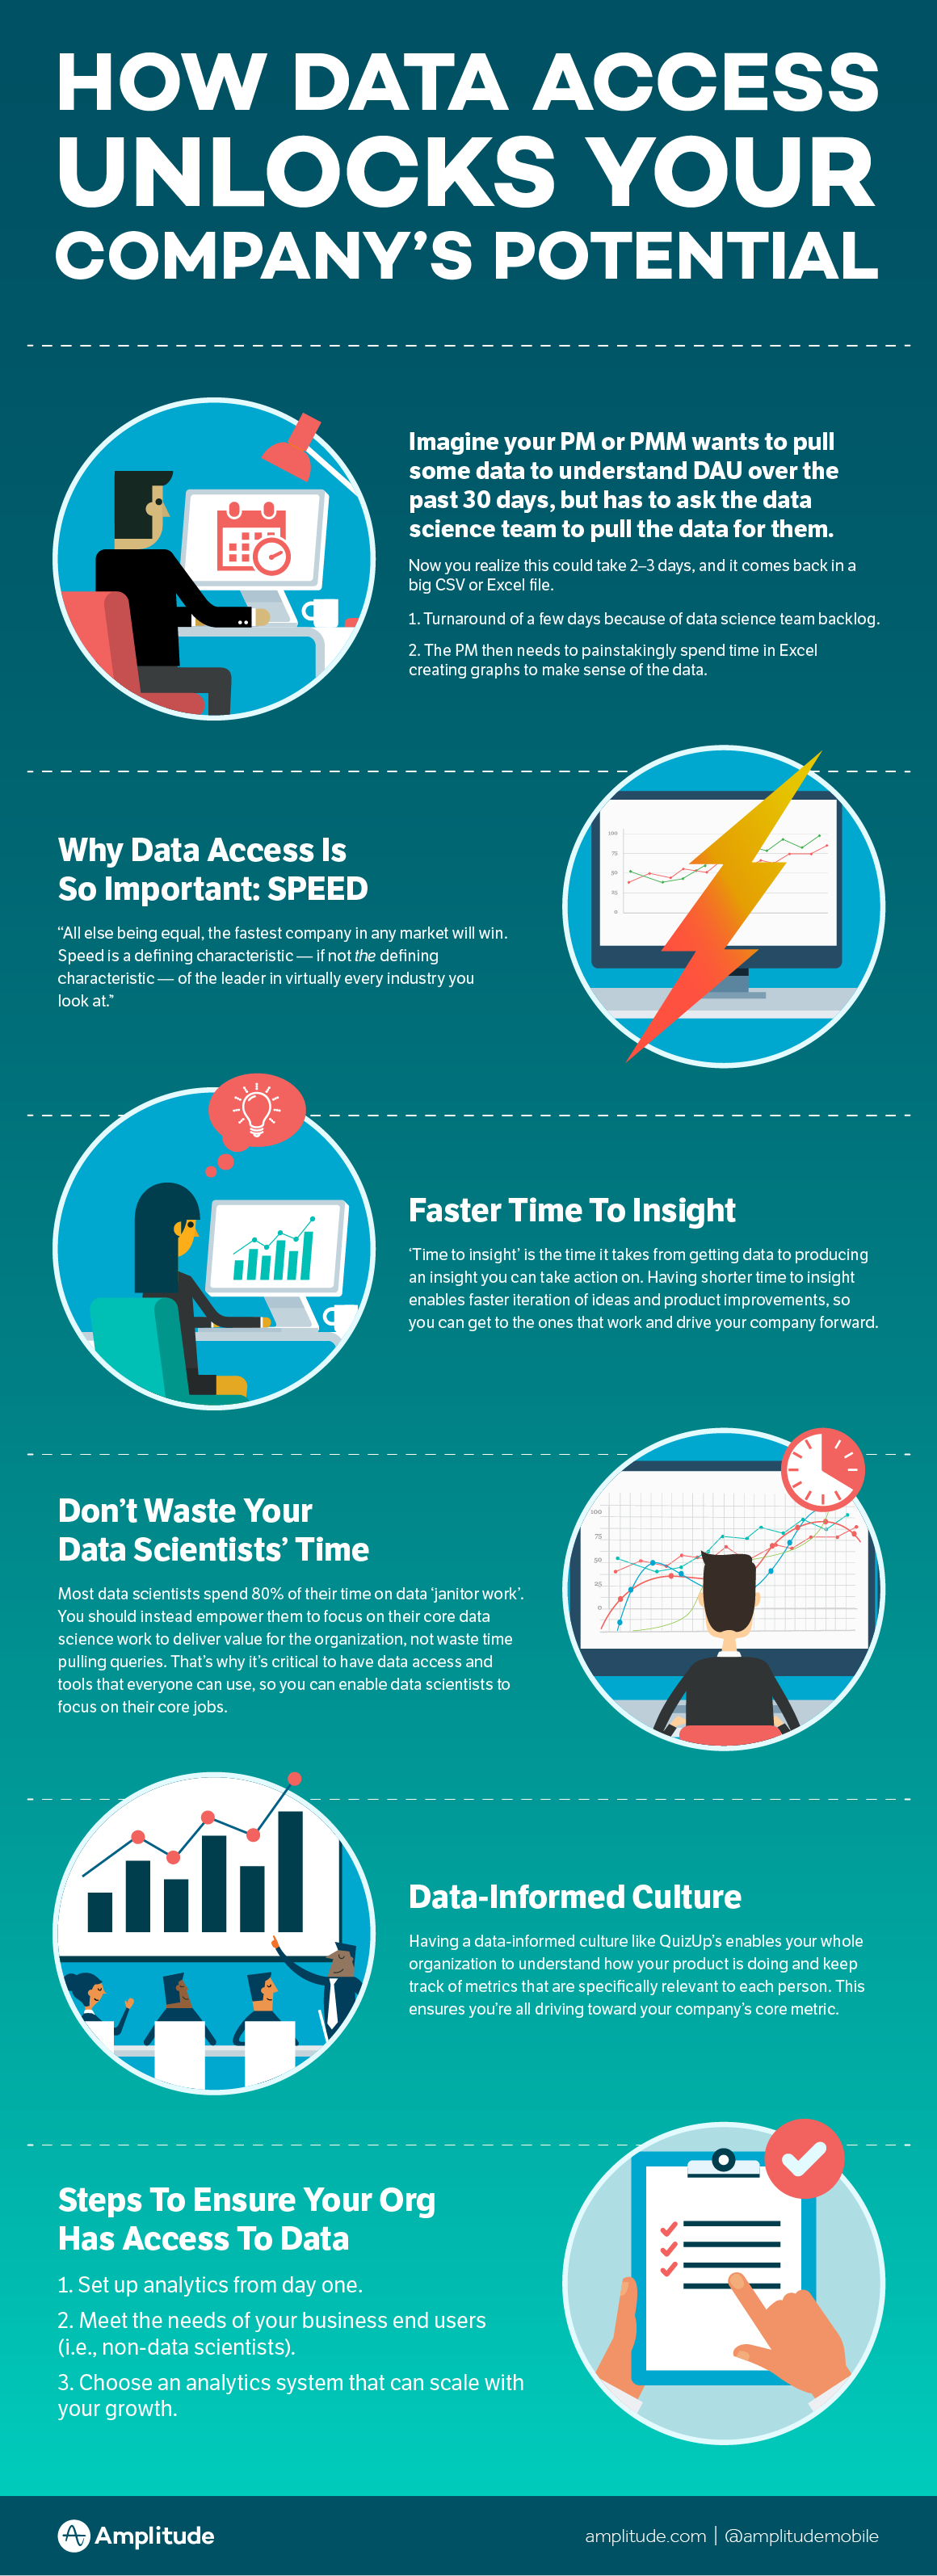 data-access-infographic-1-01